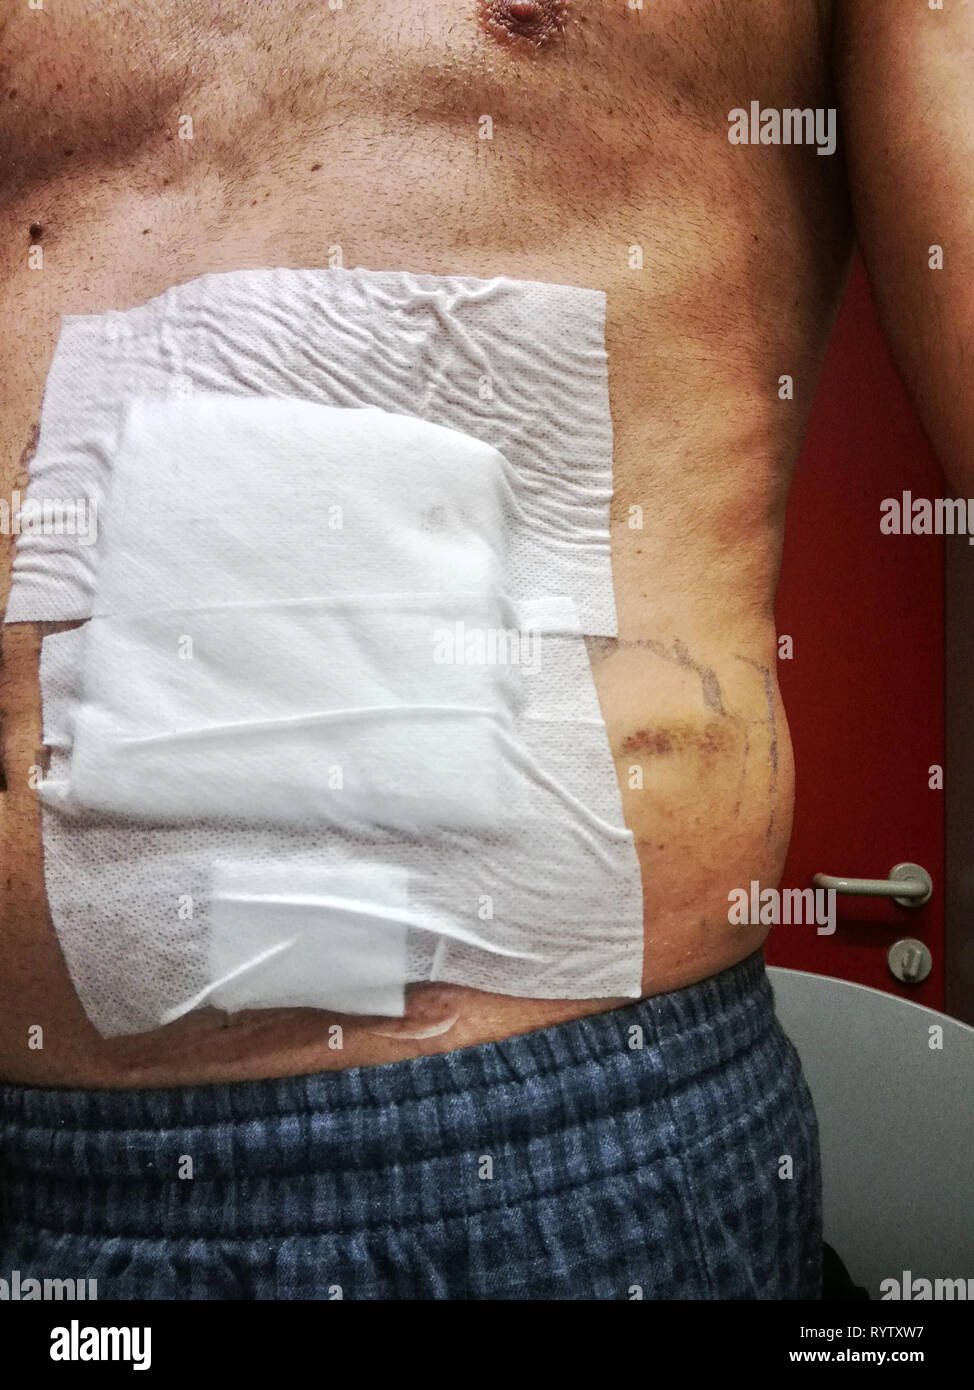 medicated abdomen after surgery - Stock Image